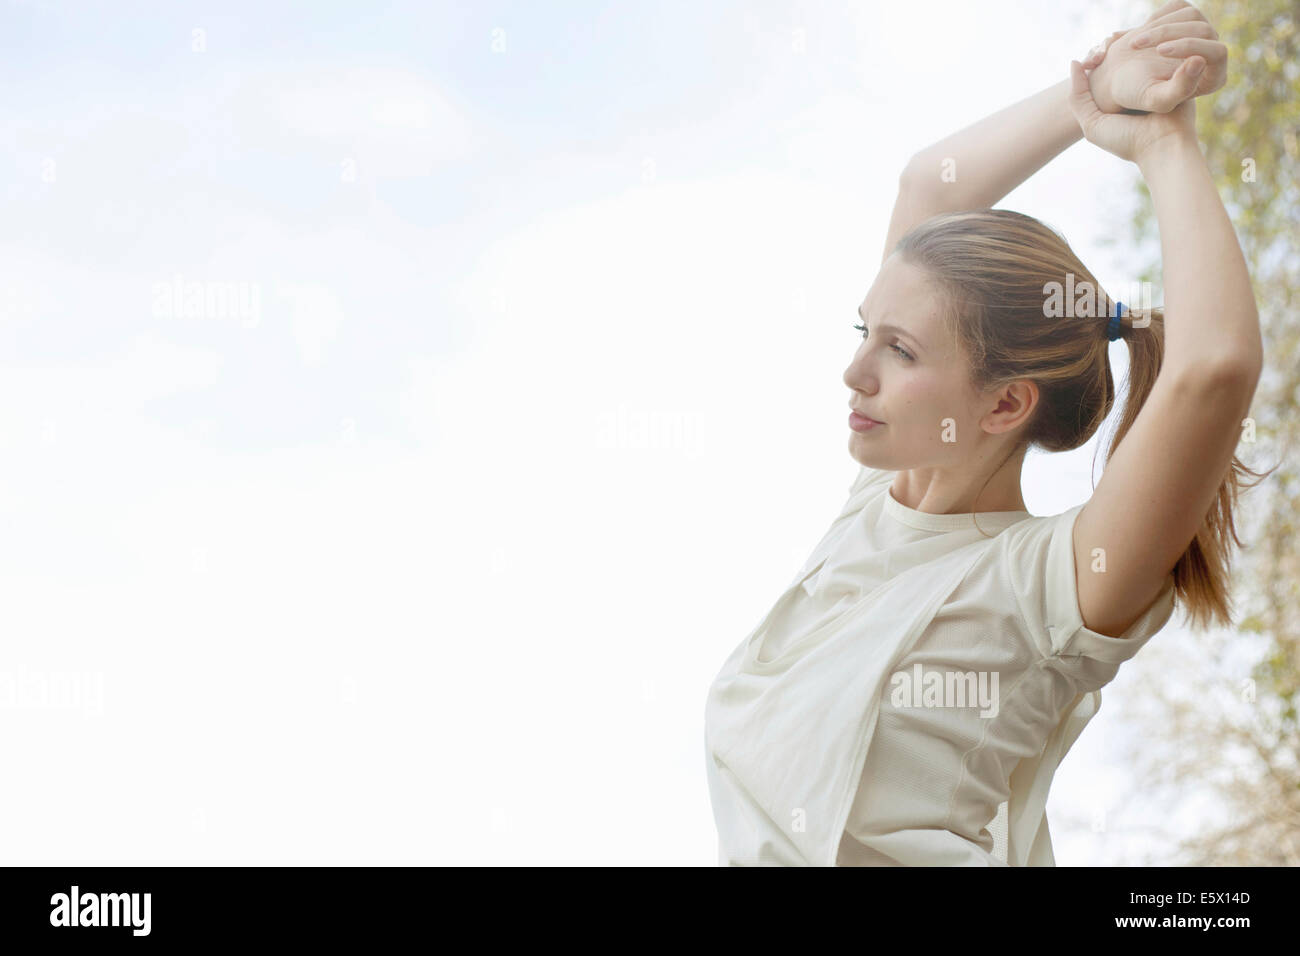 Young woman stretching arms before exercise - Stock Image